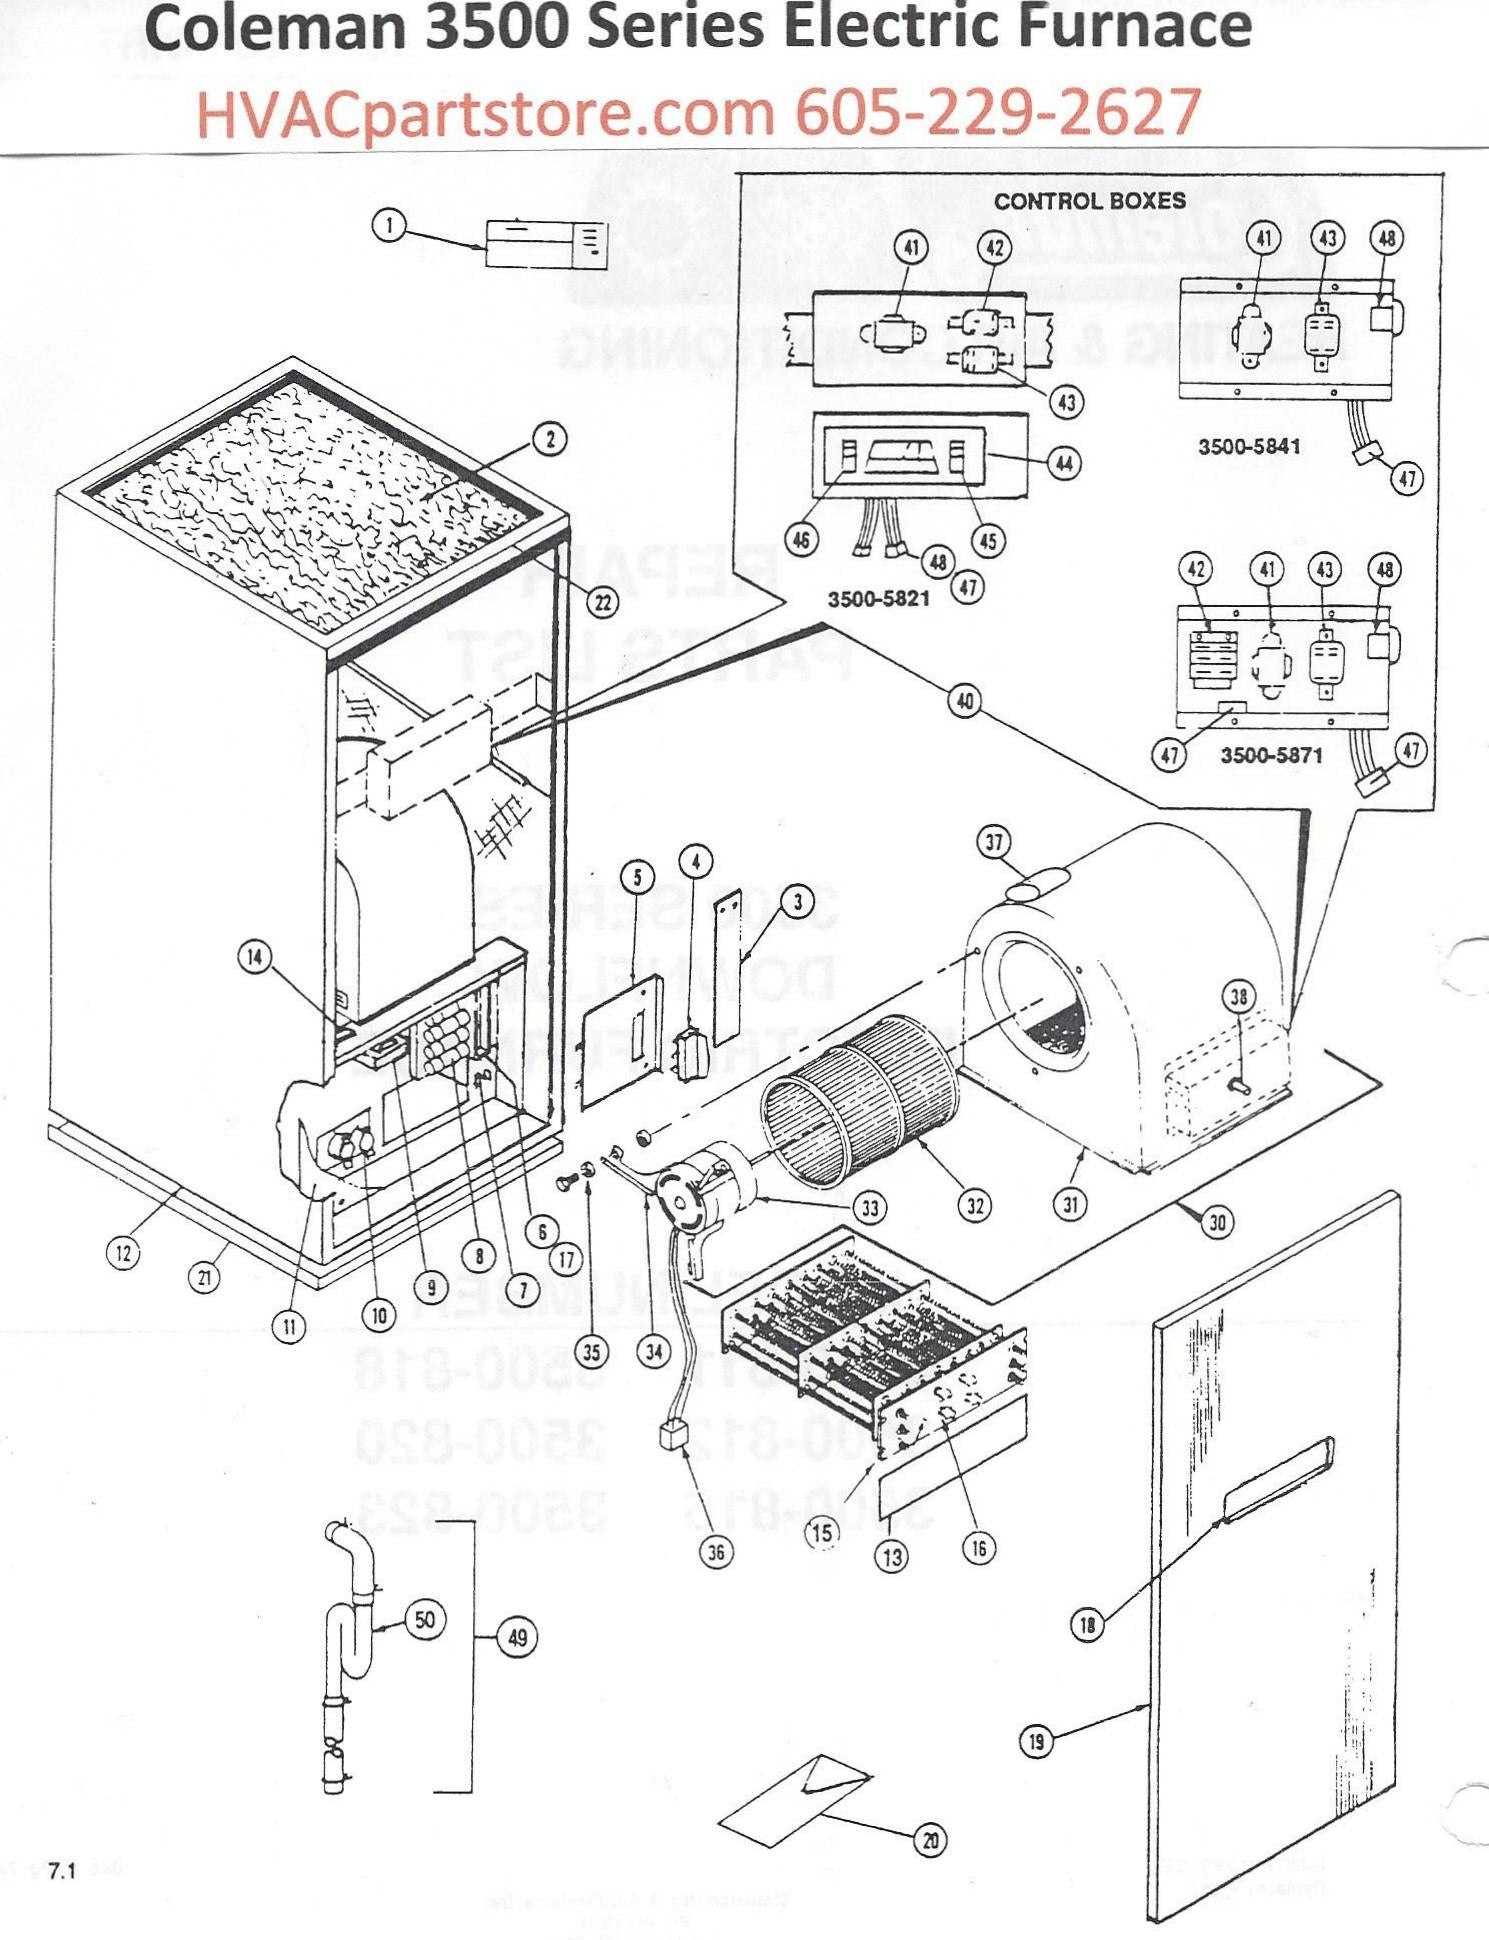 Eb15b Electric Furnace Wiring Diagrams Free Download Diagram Coleman Board Library Click Here To View An Installation Manual Which Includes 3500 818